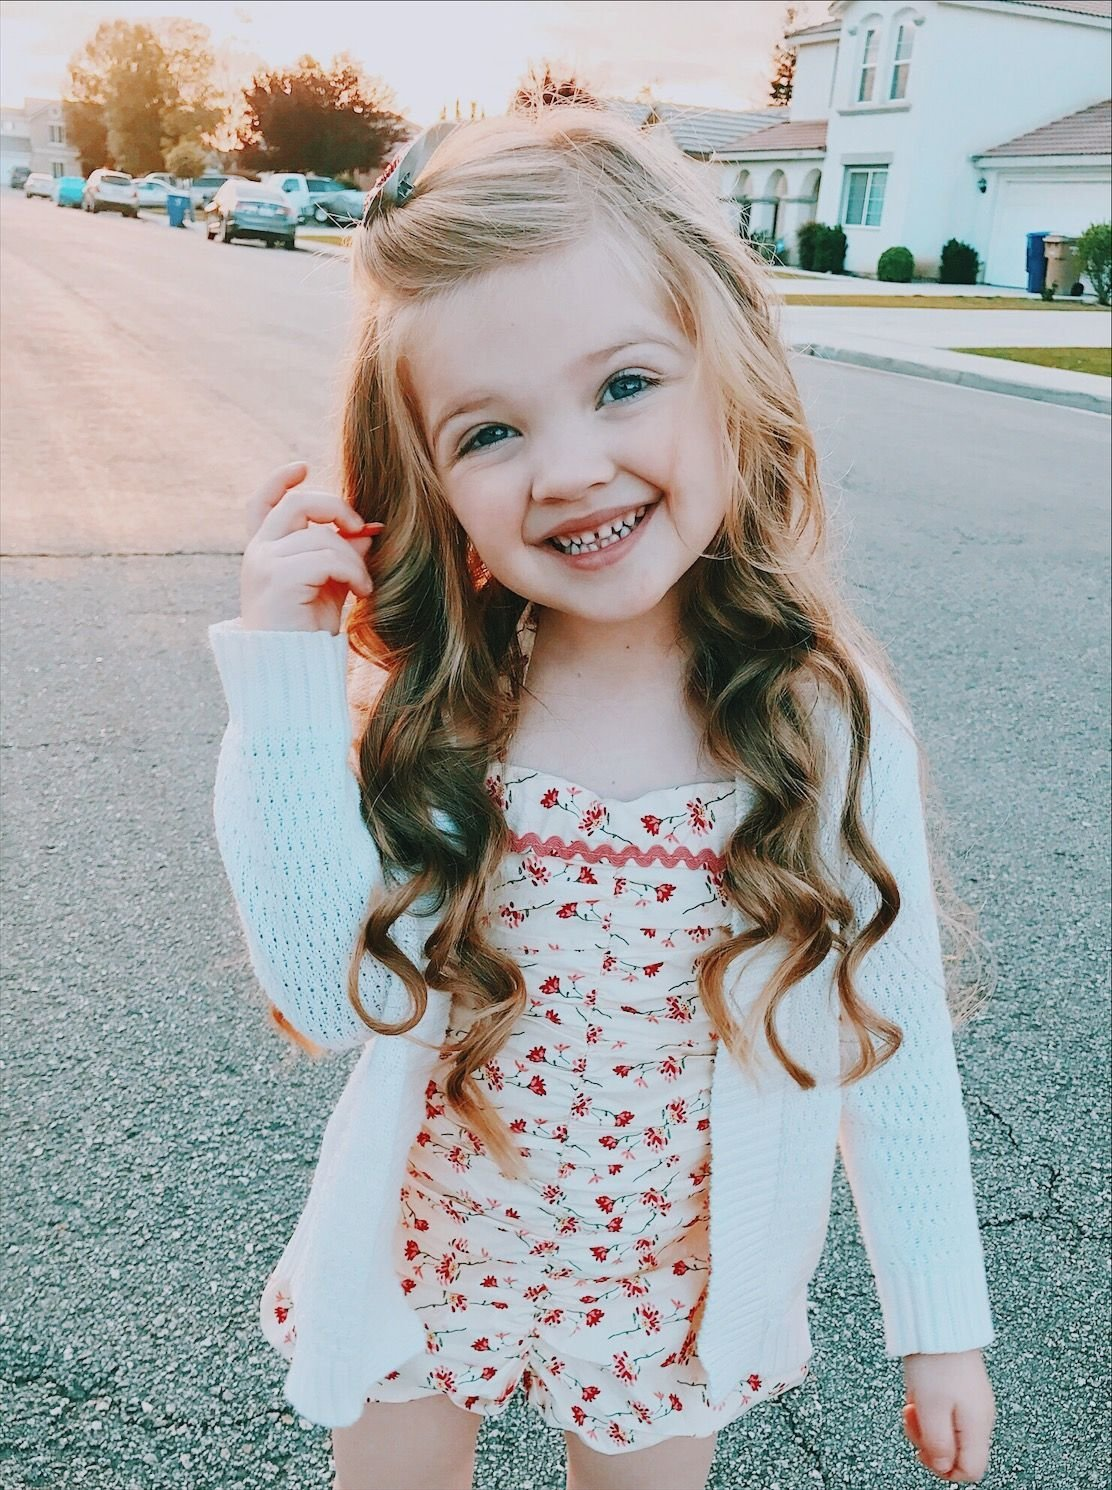 The Best Little Girl Hairstyle Long Hair Curls Curled Wavy Beach Pictures